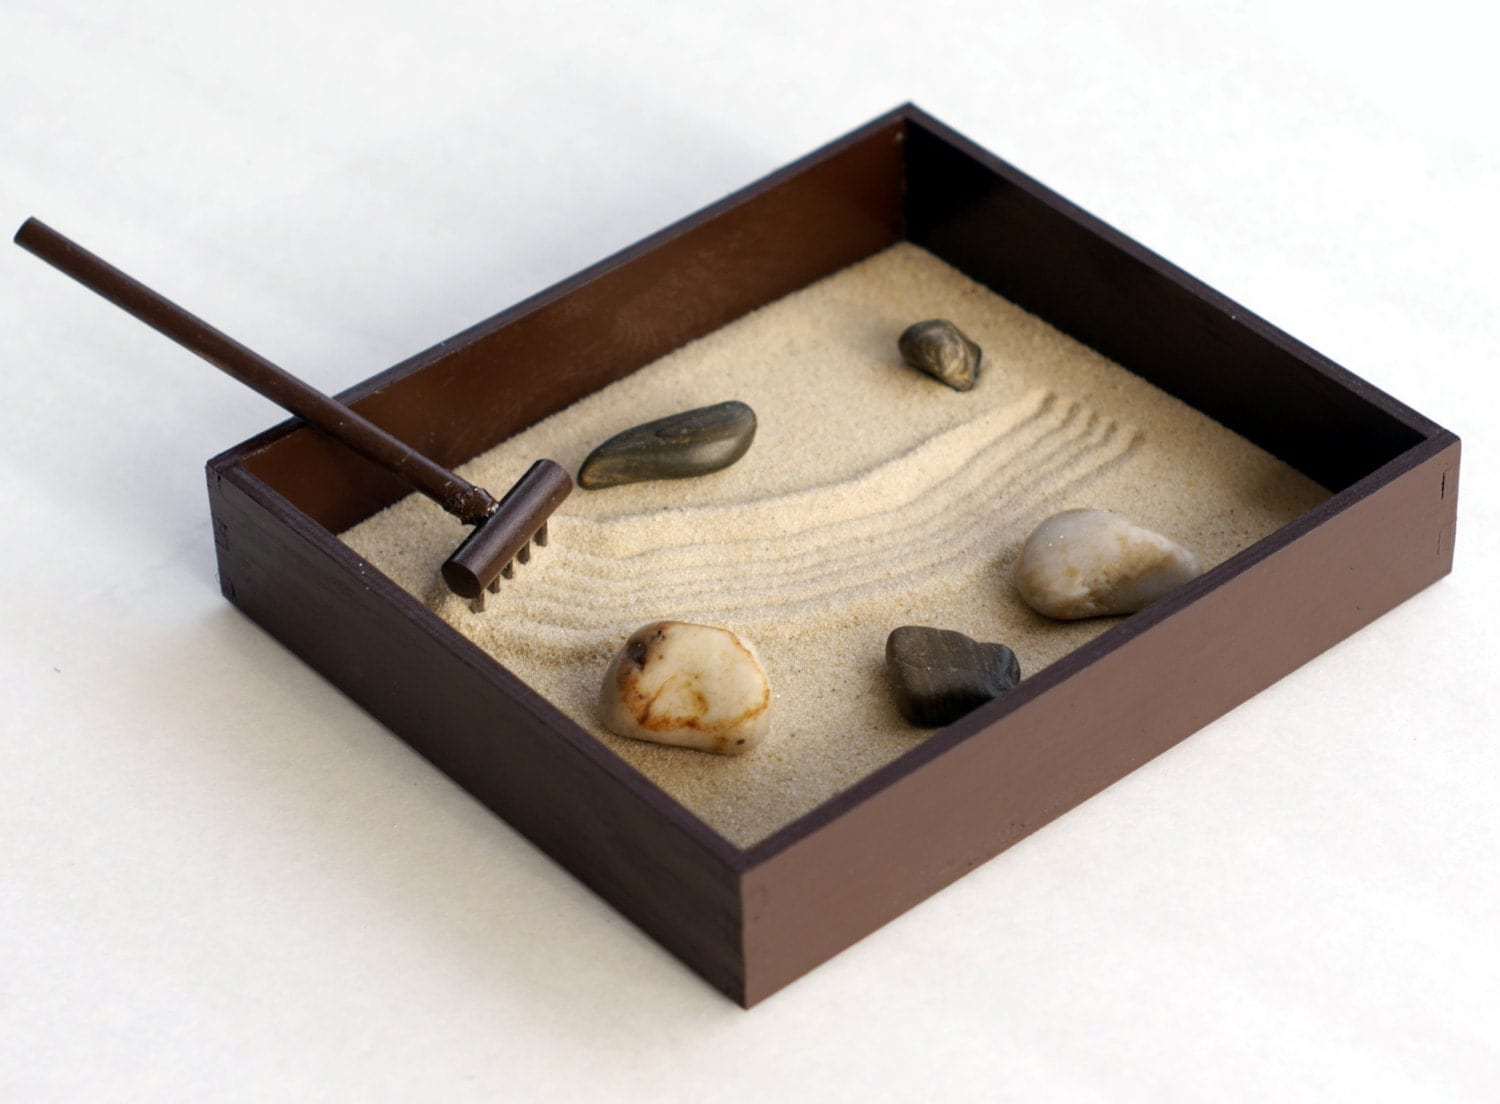 Zen garden tabletop desk accessories tabletop decor office for Table zen garden